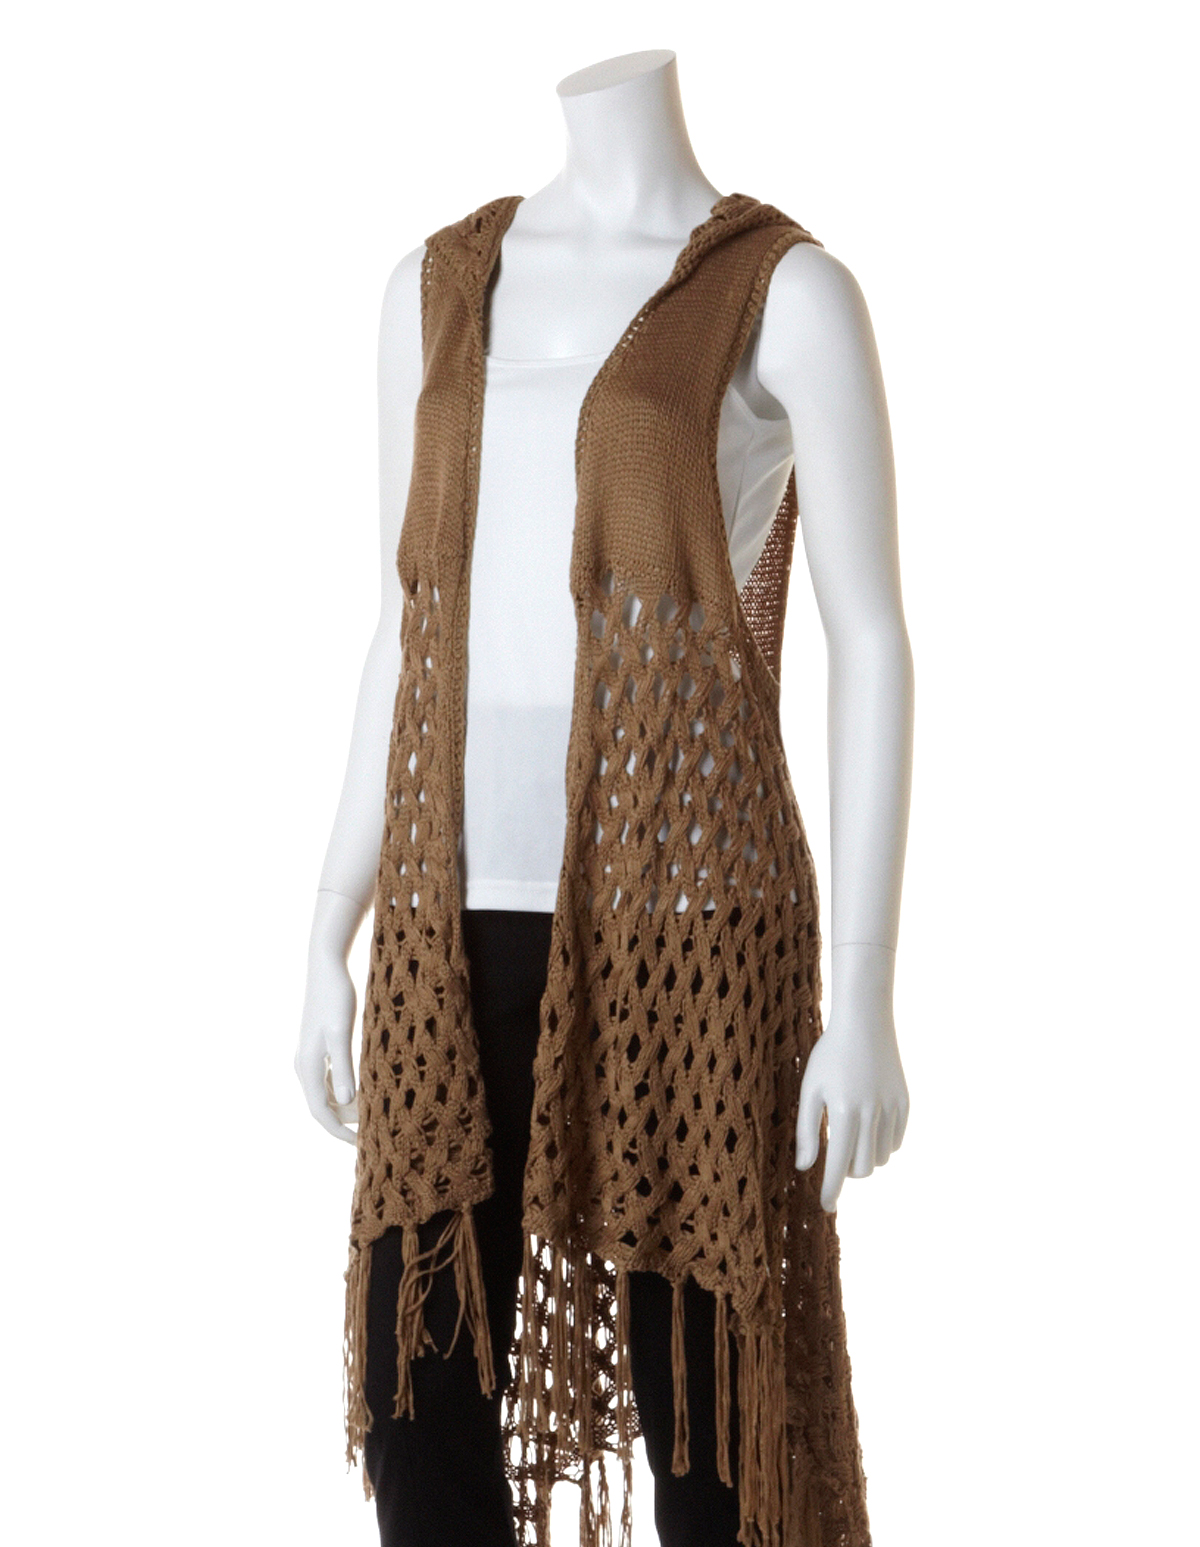 Fringed Crochet Sweater Vest, Jute Brown, Hires